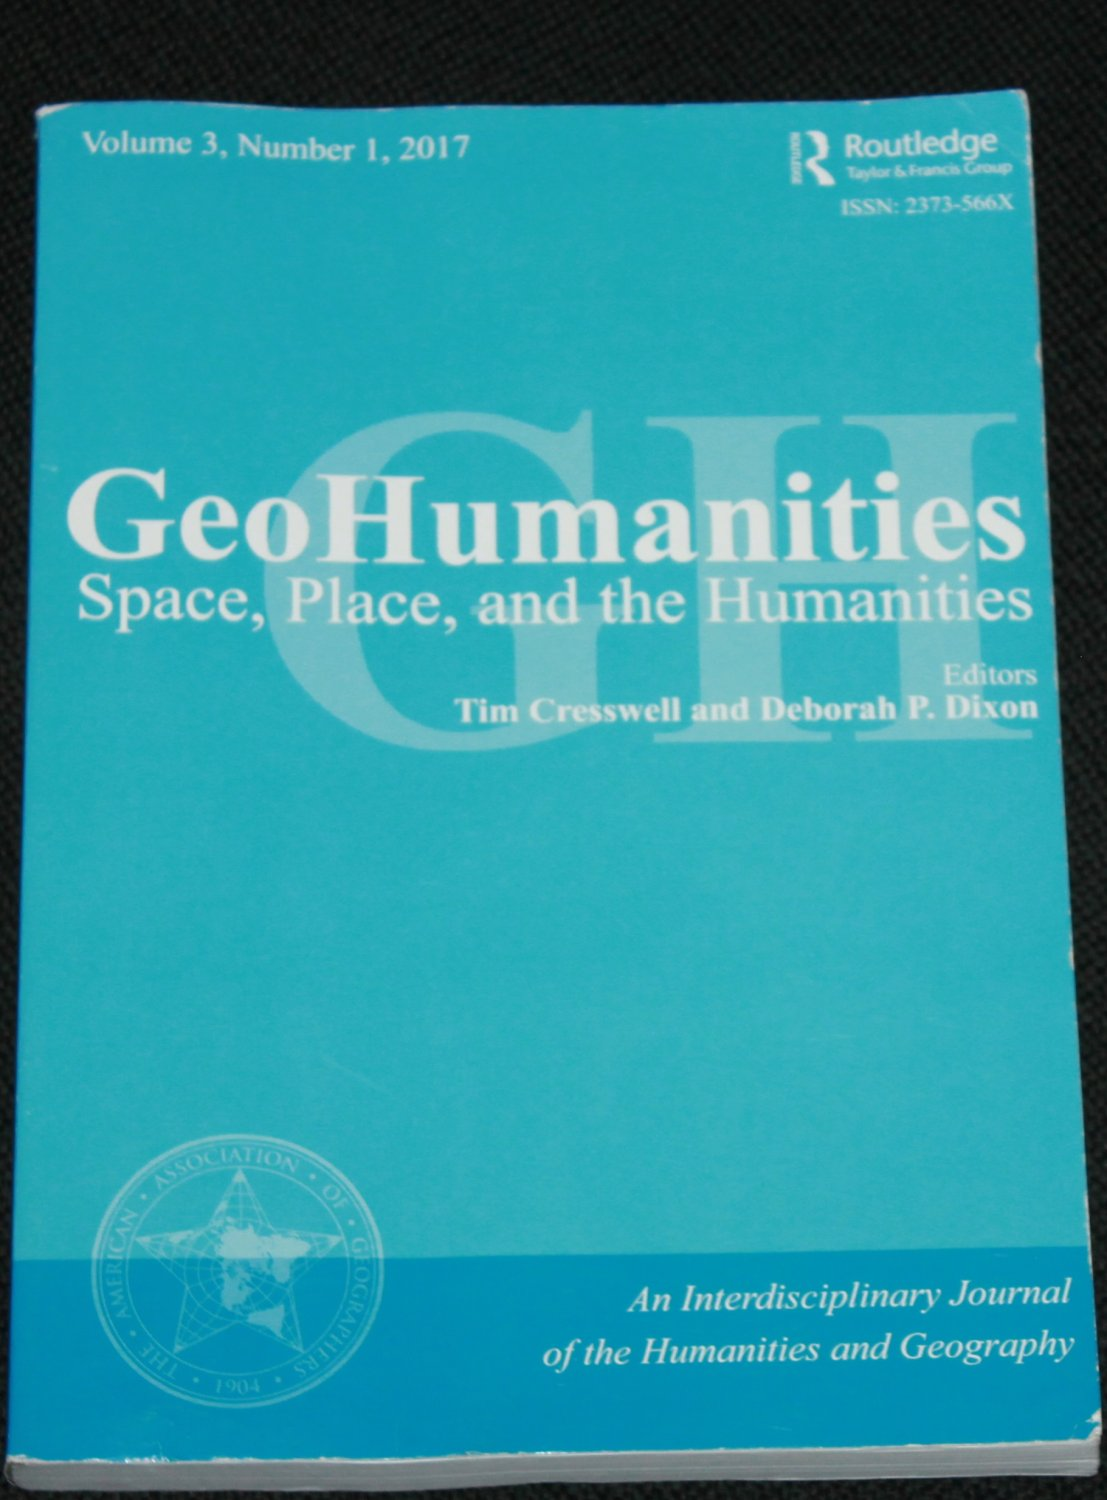 GeoHumanities Space, Place, and the Humanities Volume 3, Number  2017 Cresswell, Deborah P. Dixon